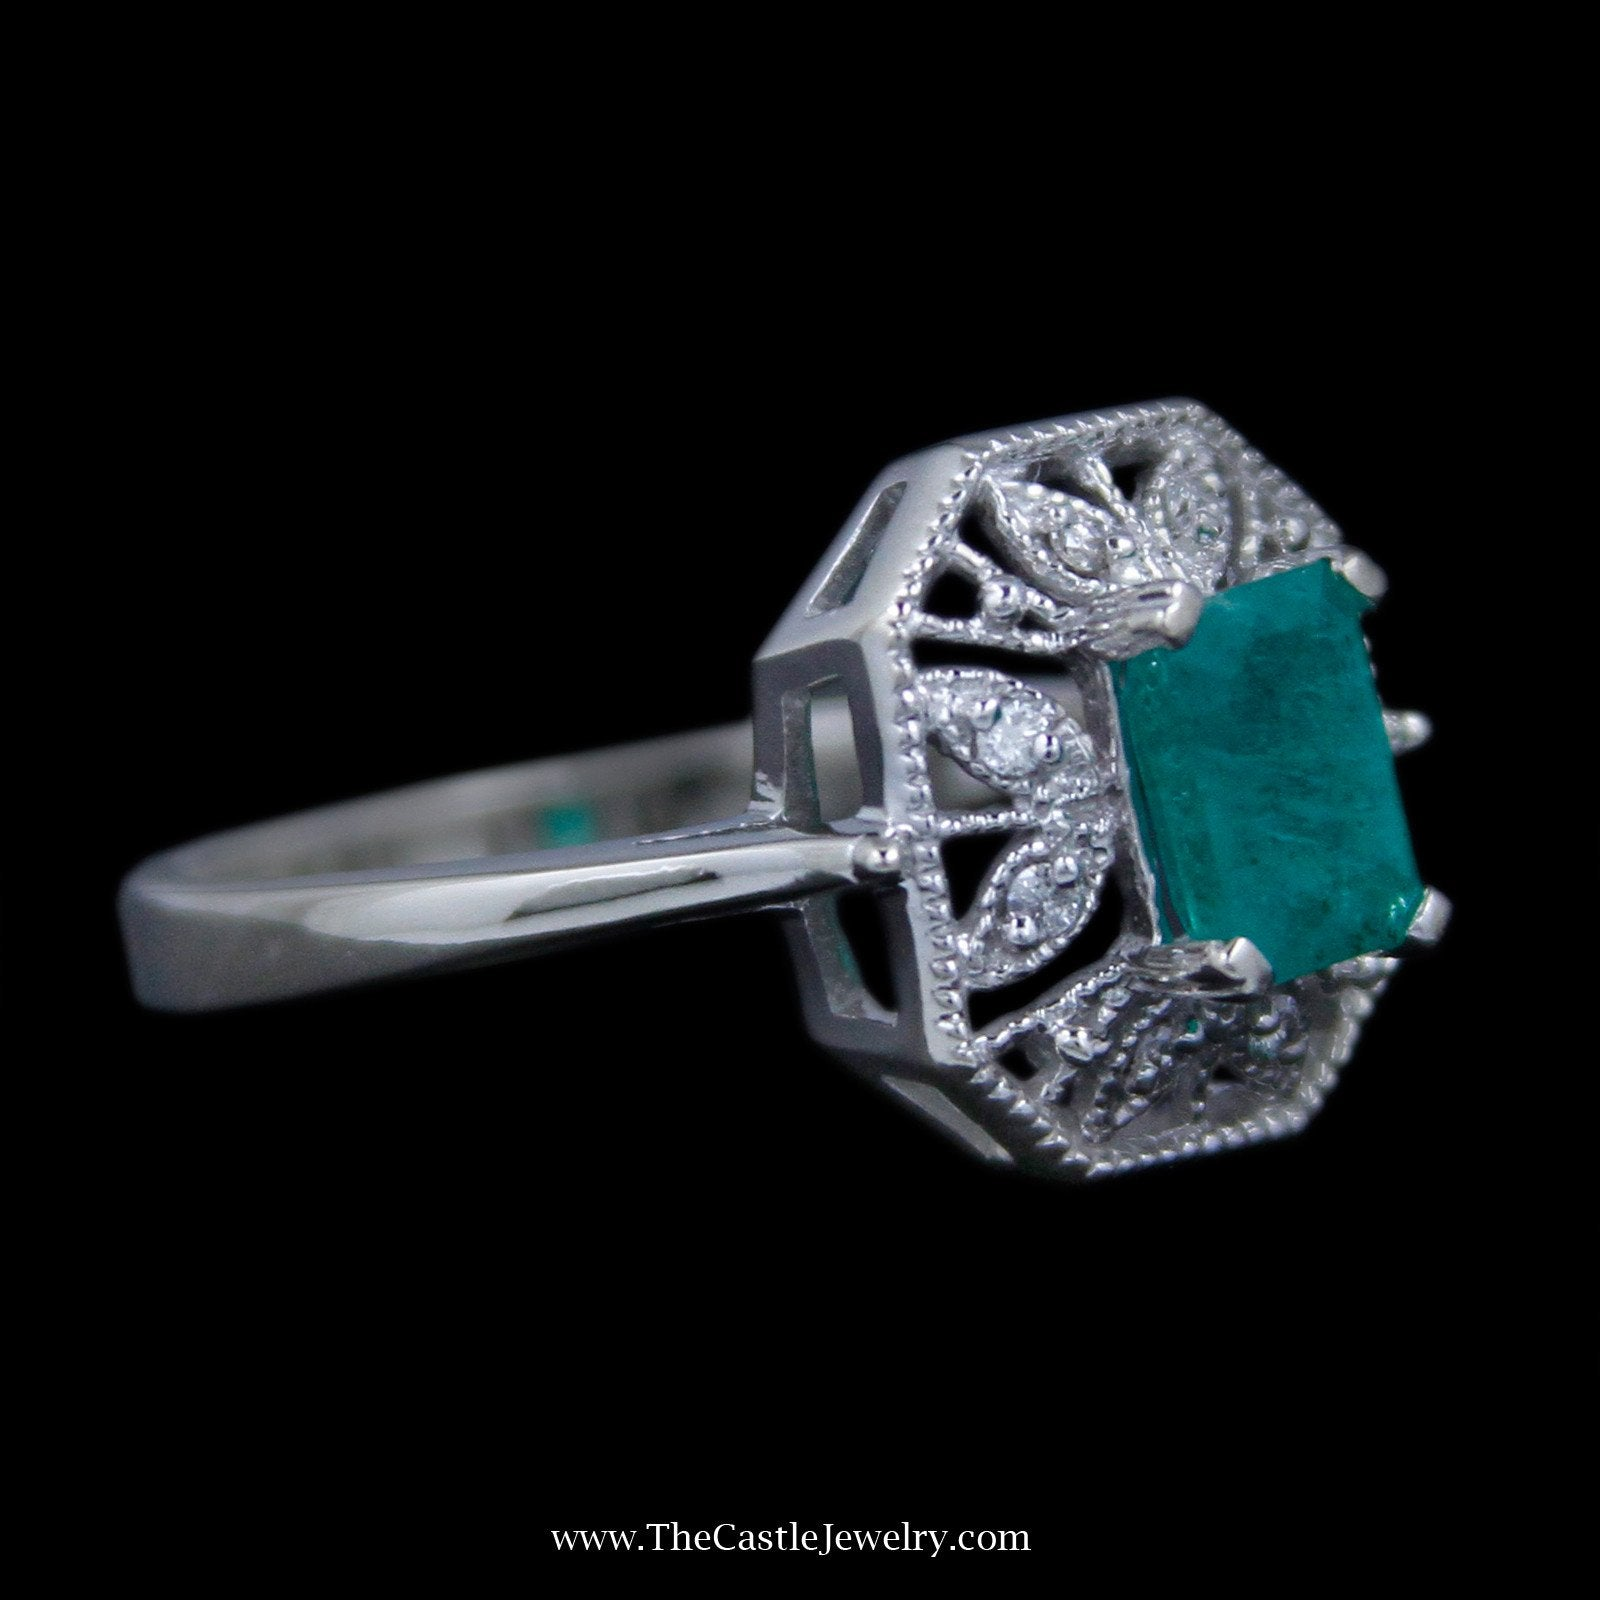 Gorgeous Emerald Cut Emerald Ring with Round Diamond Open Leaf Design Mounting-2